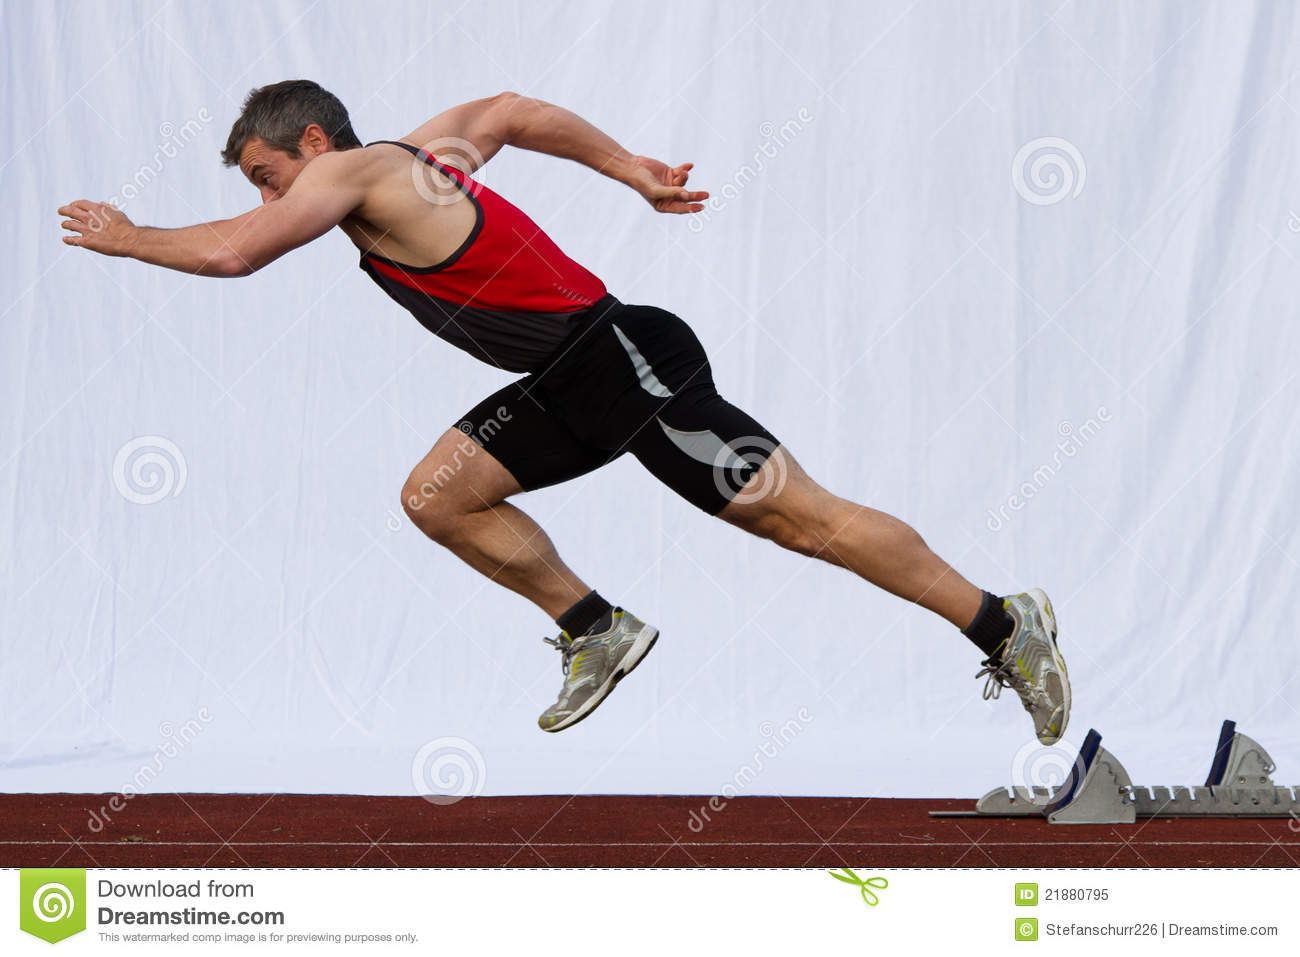 Sprint Start Royalty Free Stock Photo - Image: 21880795